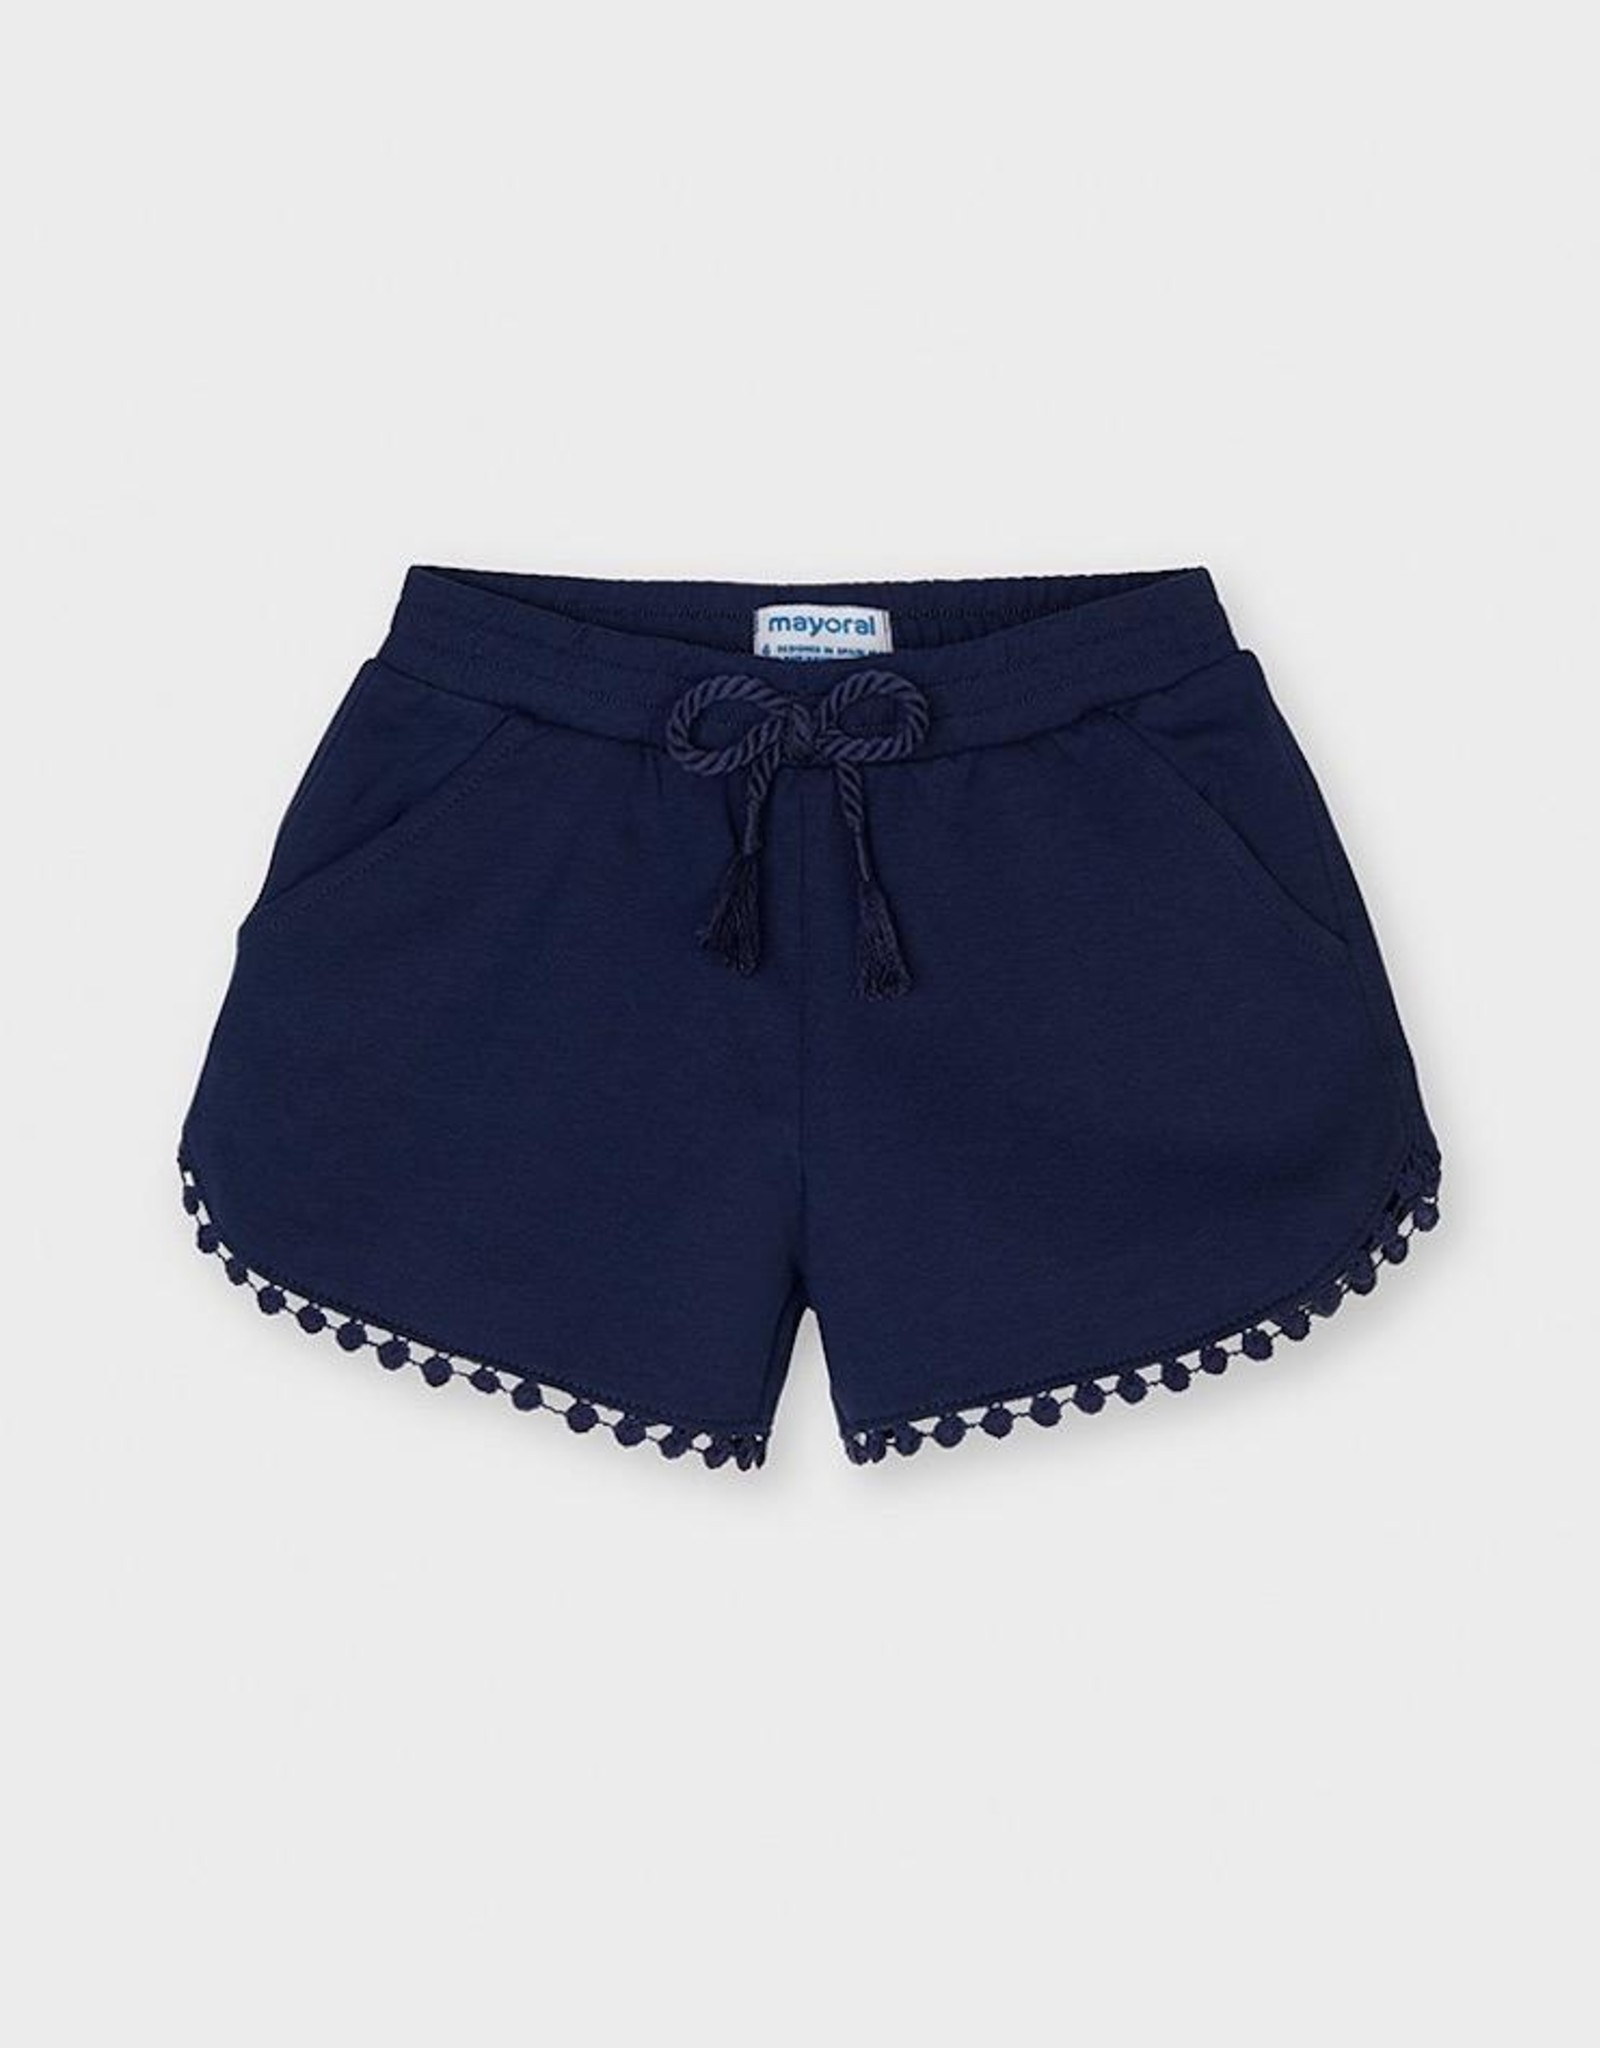 Mayoral Ink Chenille Knit Shorts